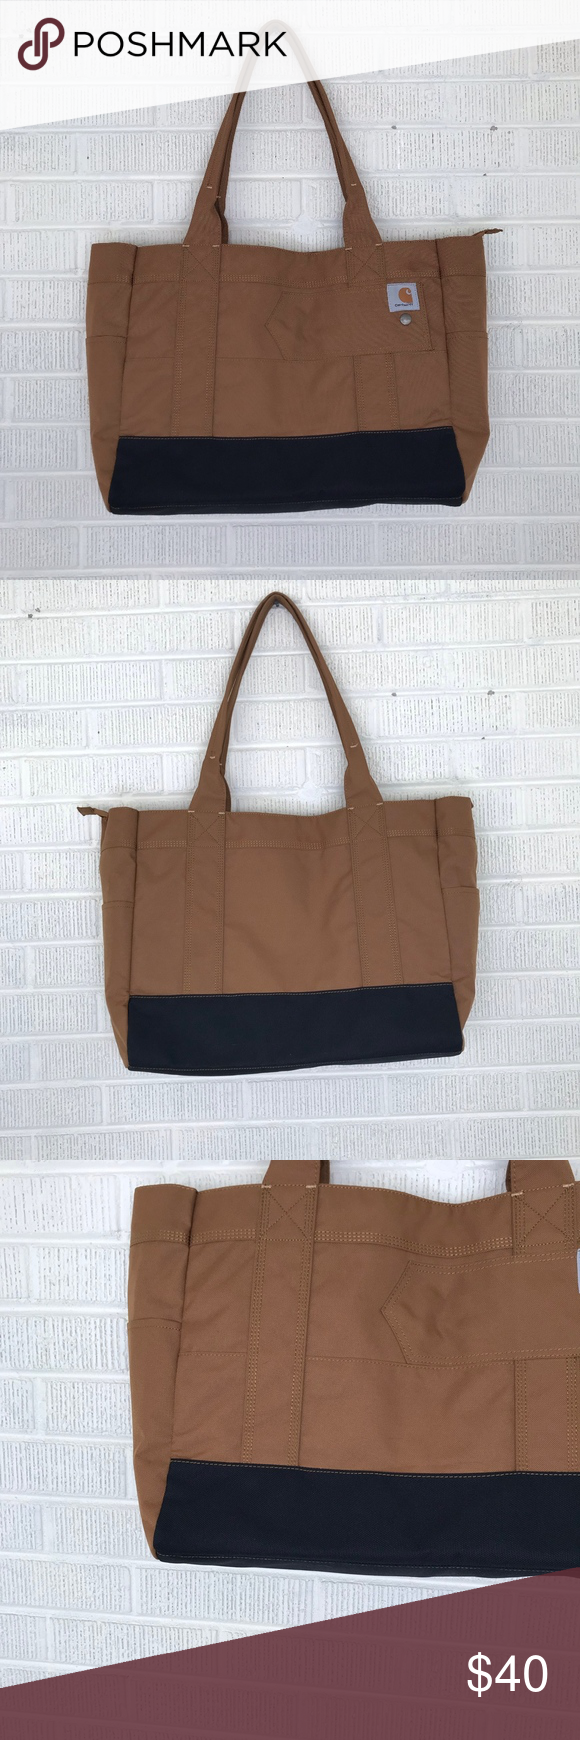 Carhartt Women's Legacy East West Tote Bag Brown Carhartt Women's Legacy East West Tote Bag Brown  - Carhartt  - Women's Legacy East West Tote Bag  - Carhartt Brown - Side Outer Pockets - Zippered Top - 3 open side interior pockets - Side pocket with hook and loop closure  - Wide shoulder tote for carrying personal items - Constructed of heavy-duty 600D Poly - Treated with Rain Defender™ Durable Water Repellant - Duravax™ abrasion resistant base - EUC, Excellent used condition Carhartt Bags #carharttwomen